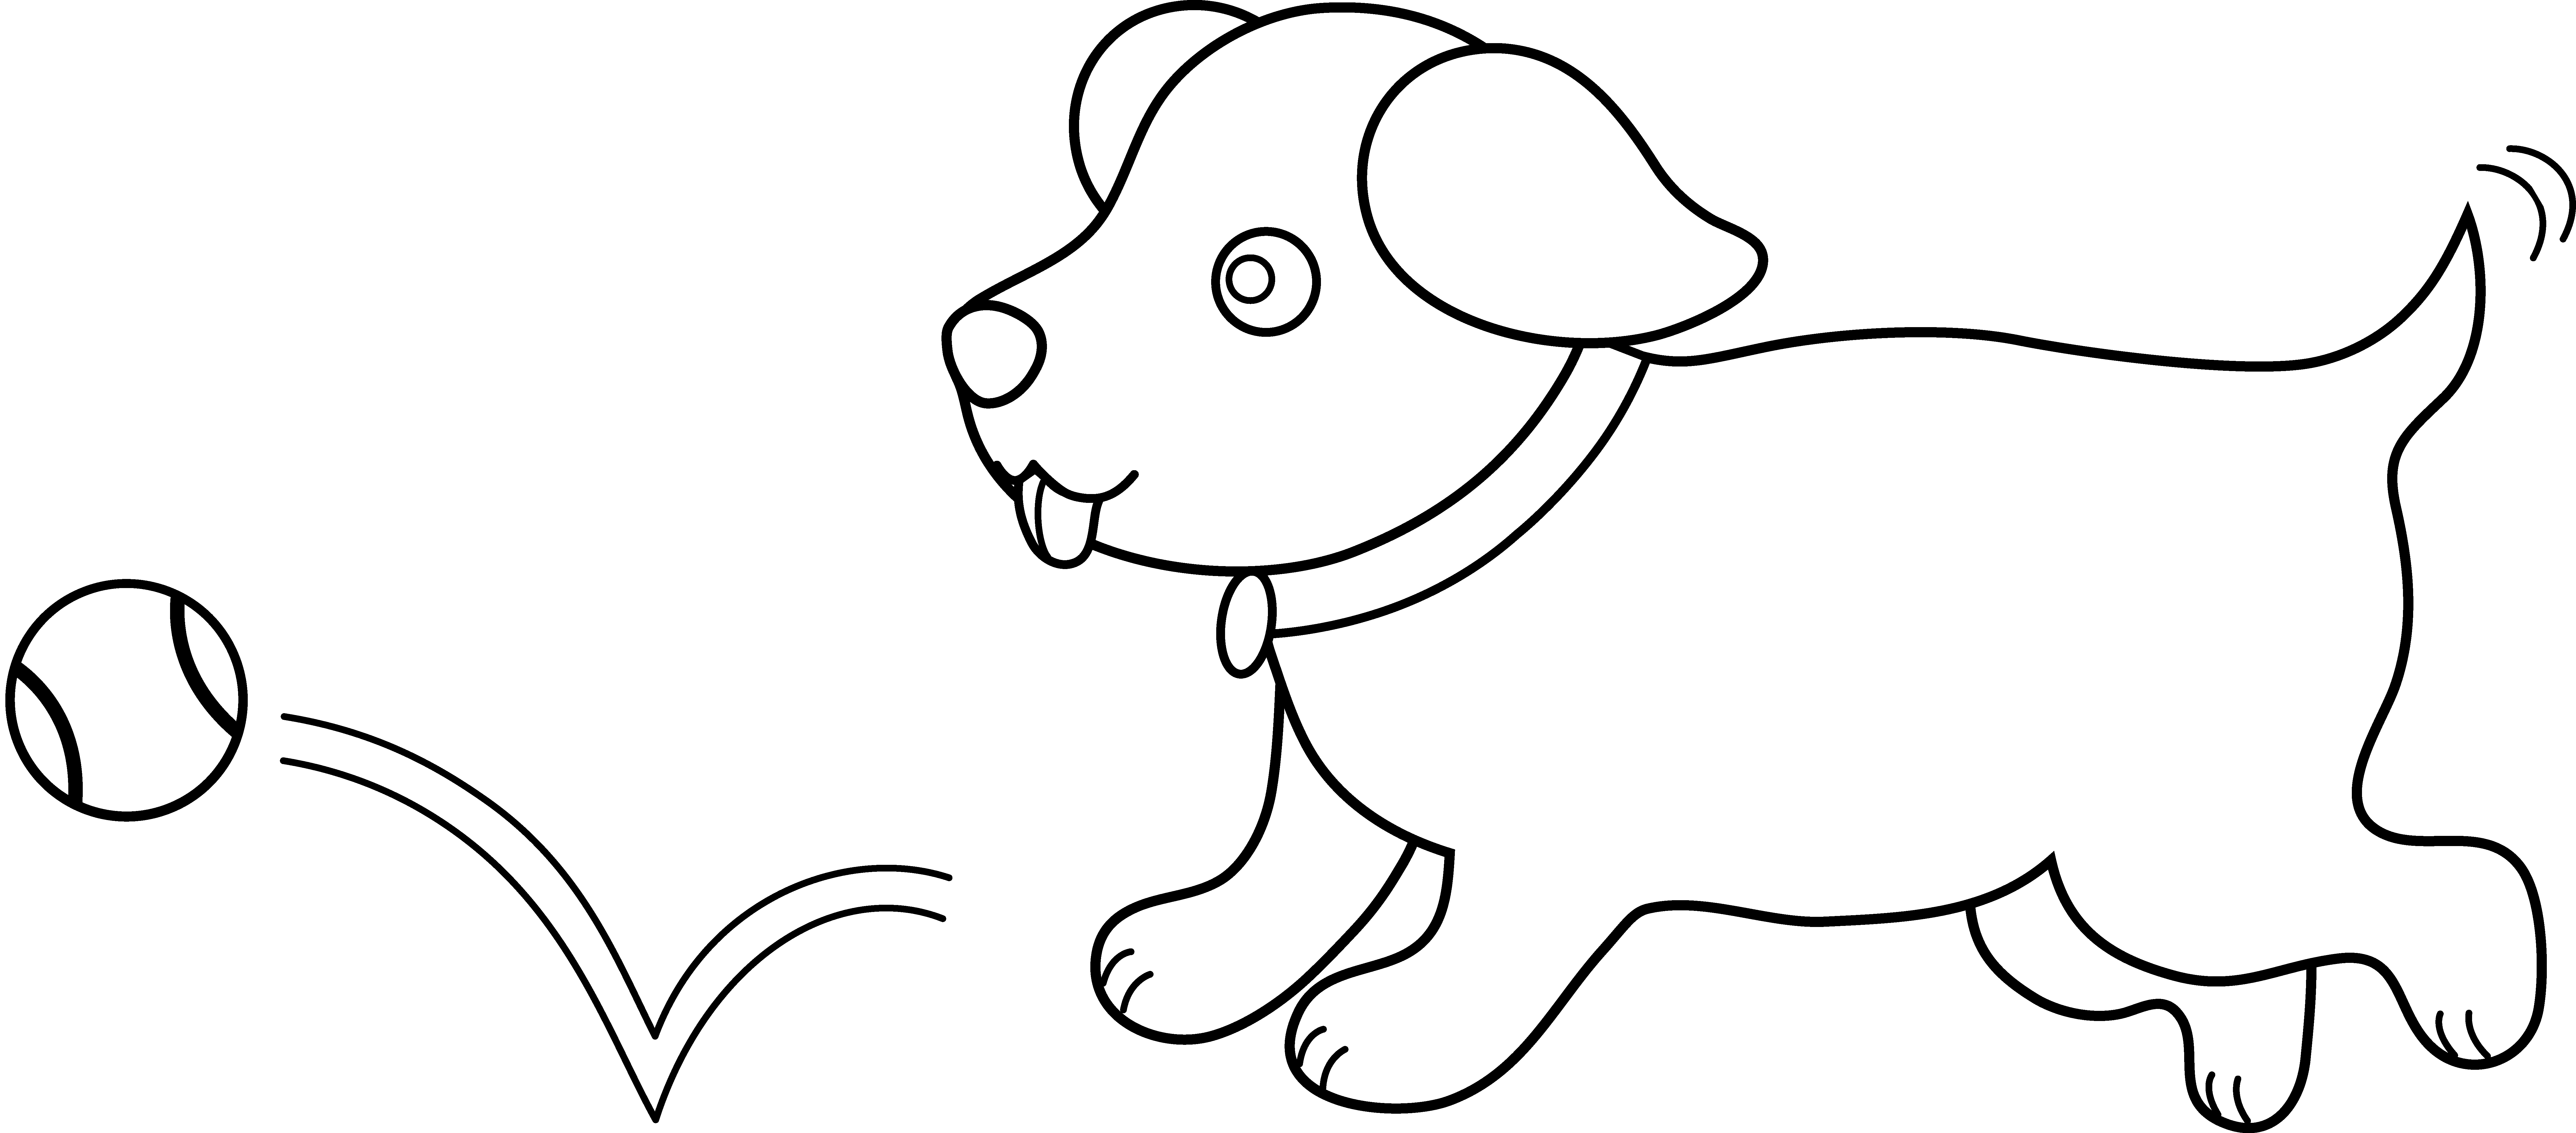 Doggy drawing playful dog. Line art of puppy